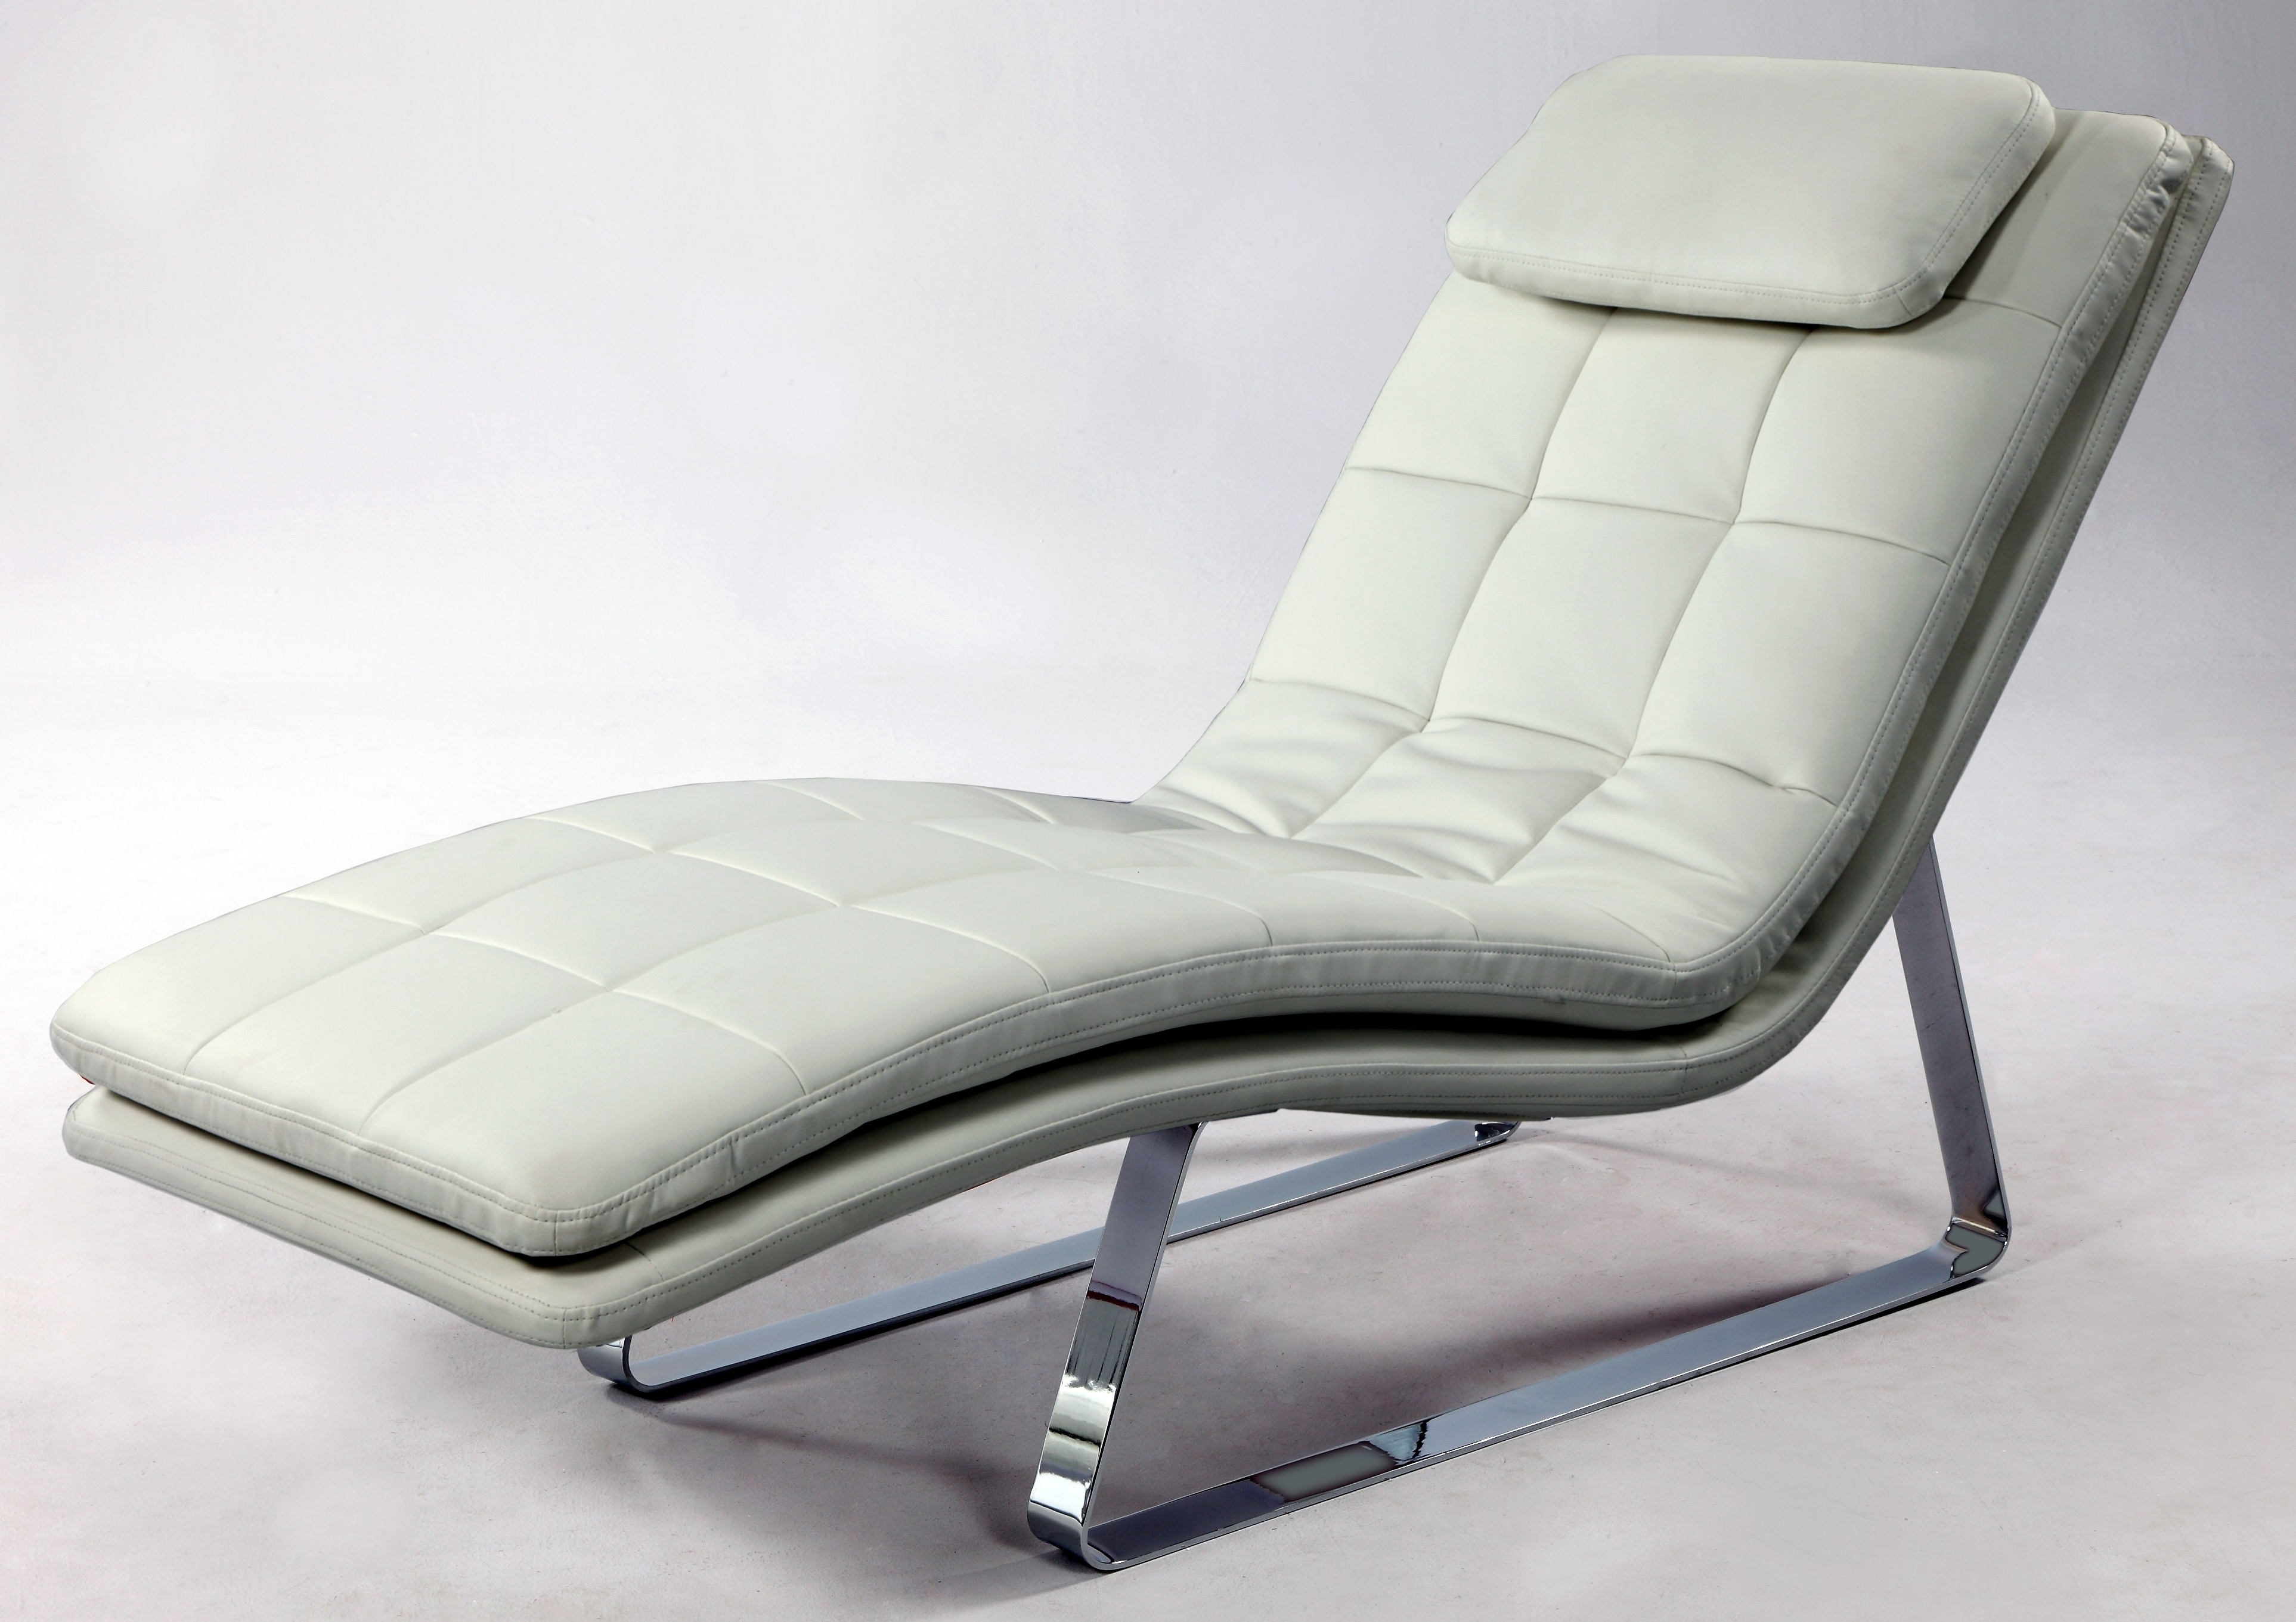 2018 Full Bonded Leather Tufted Chaise Lounge With Chrome Legs New York Inside Modern Chaise Longues (View 1 of 15)